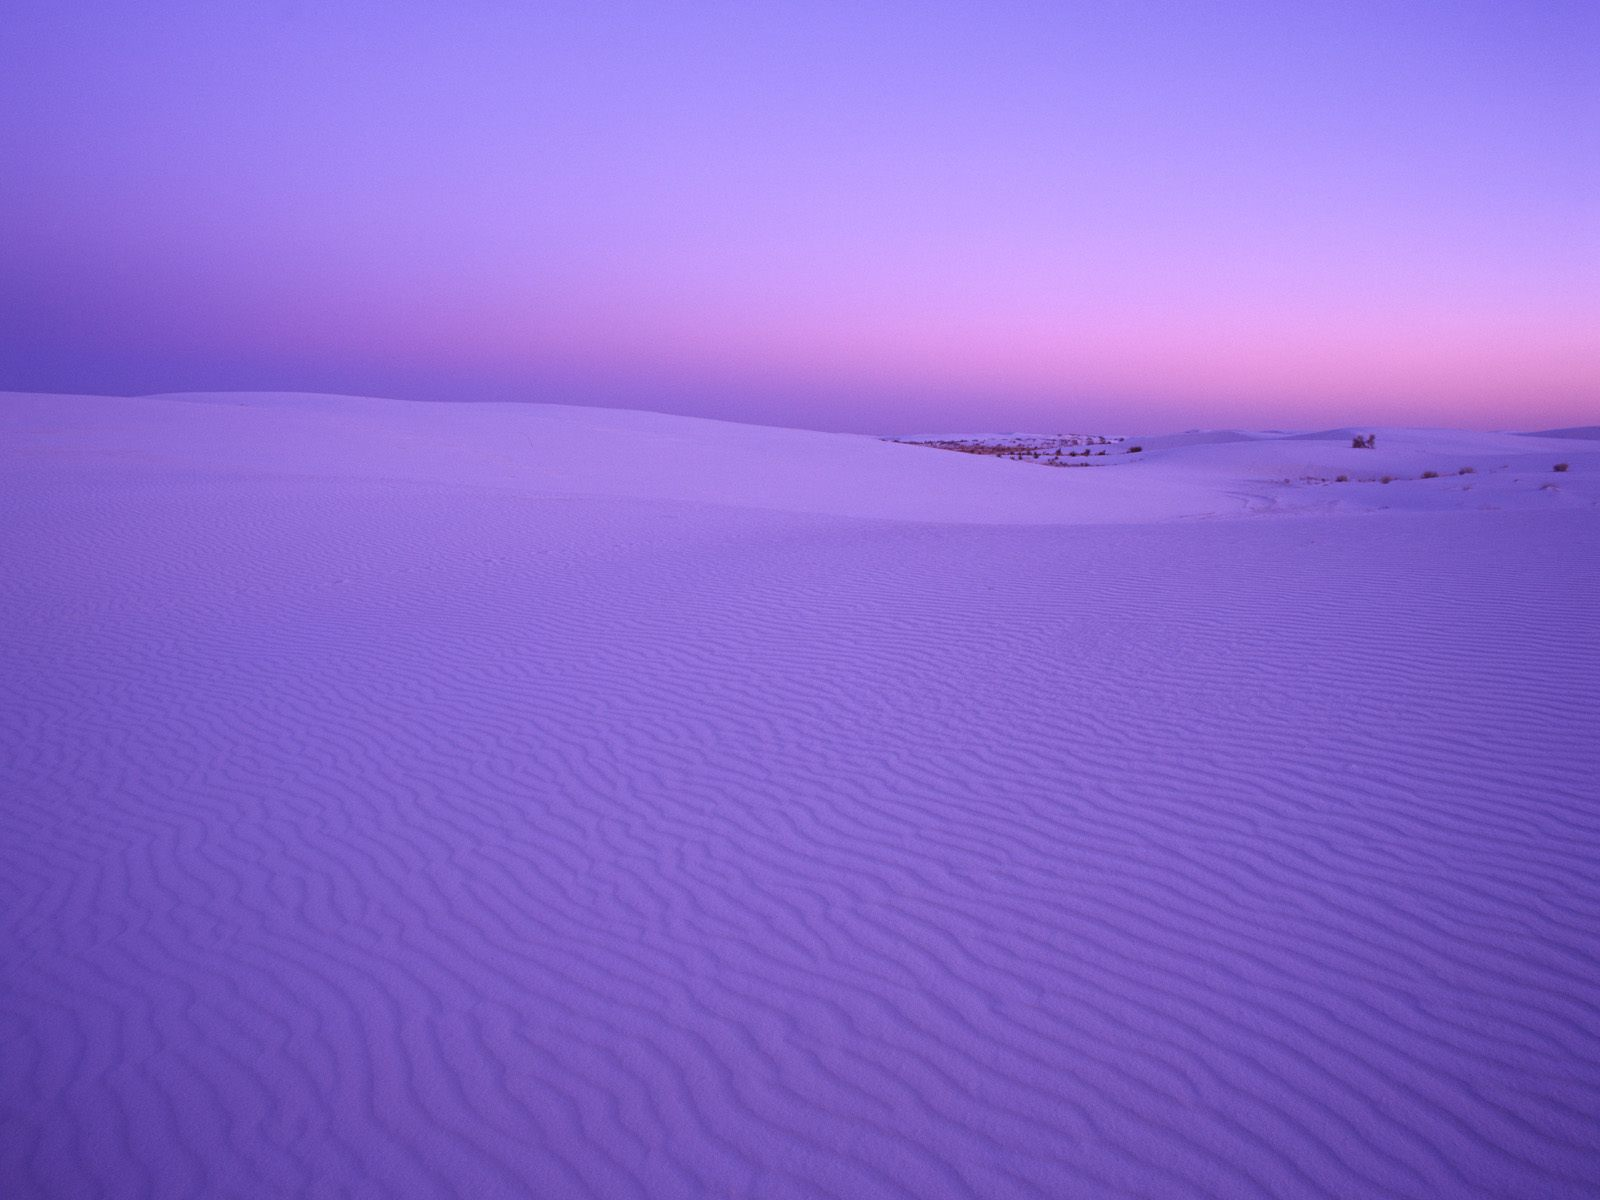 White sands national monument at twilight, new mexico